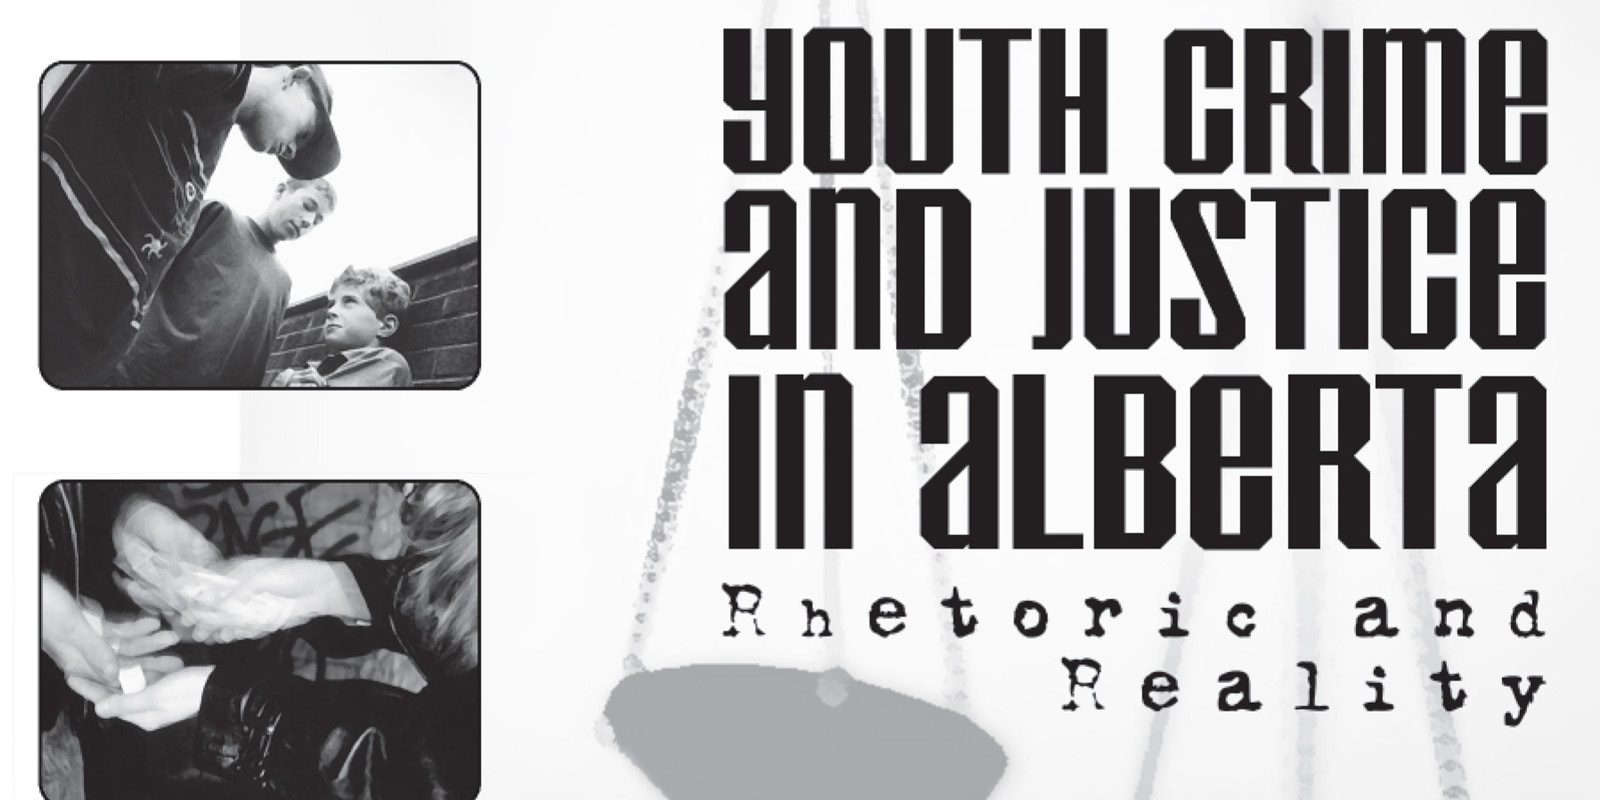 Essay on youth criminal justice act